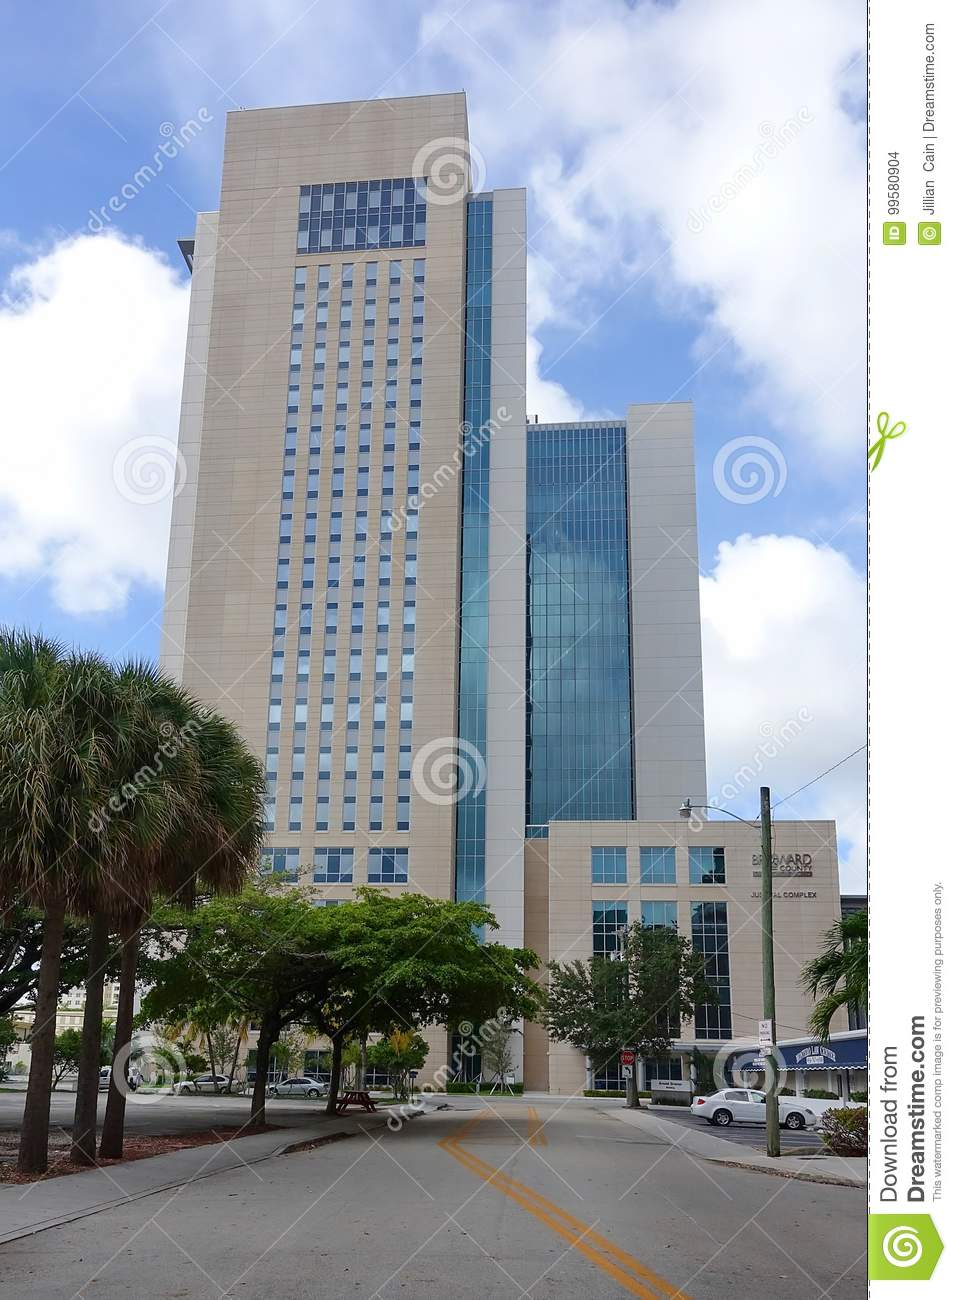 Broward Courthouse Now Open - Deborah Bianchi Tracht, P.A. |Broward Courthouse